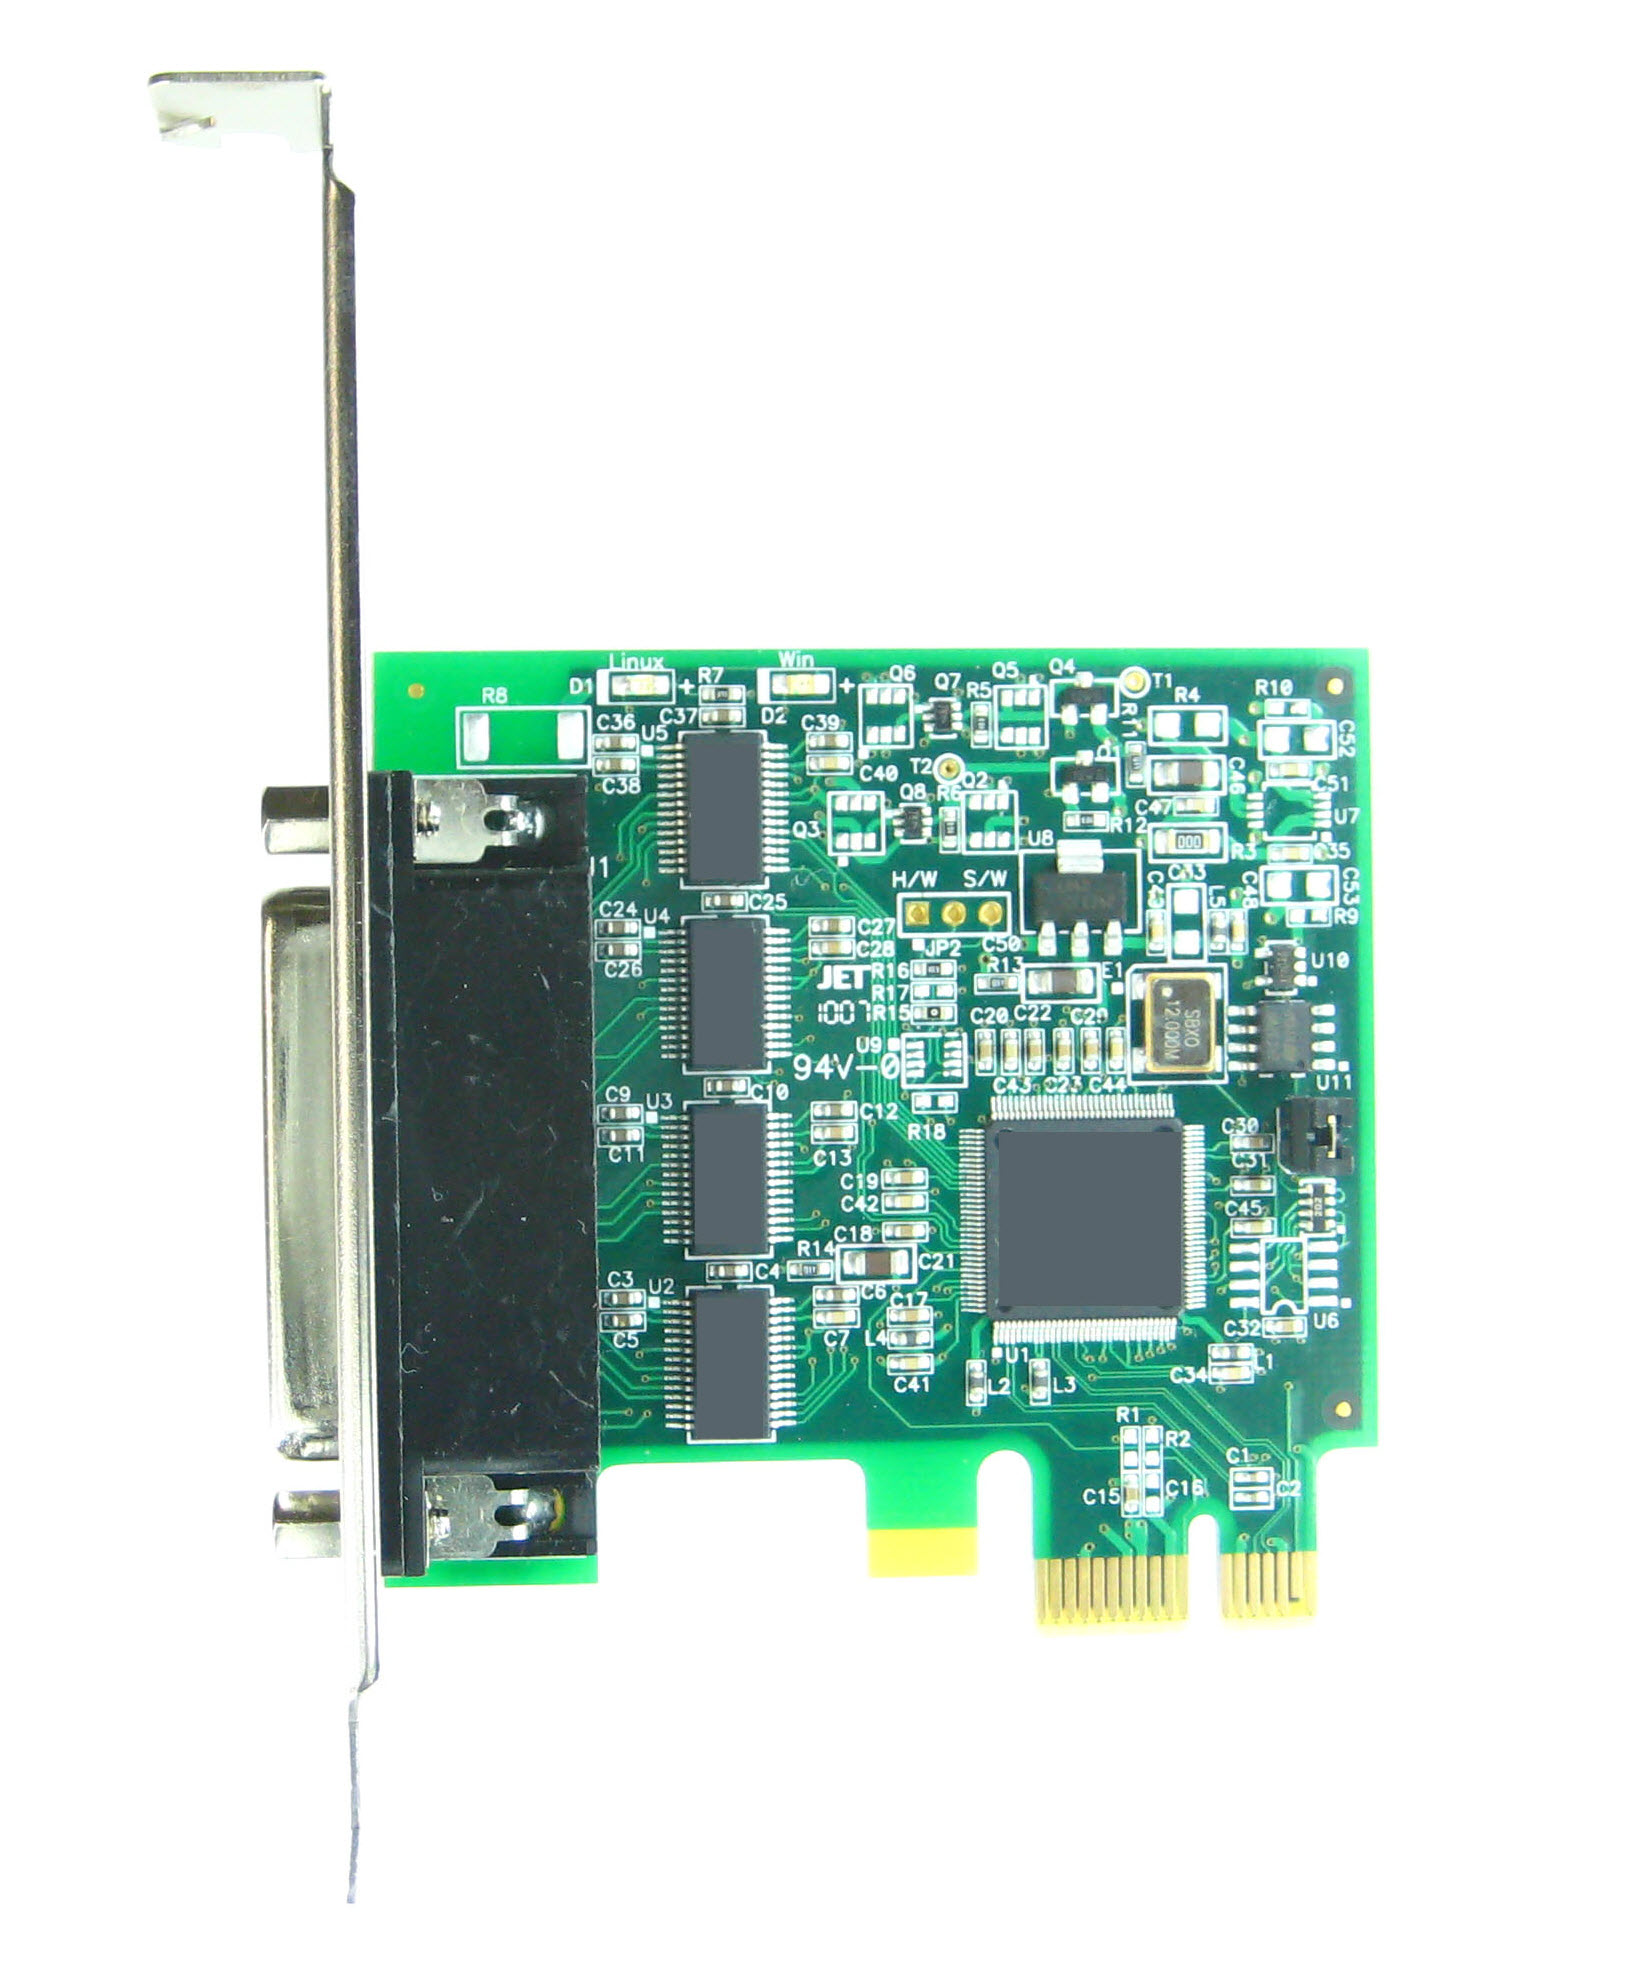 Click for large picture of the PCI Express (PCIe) LF757KB adapter